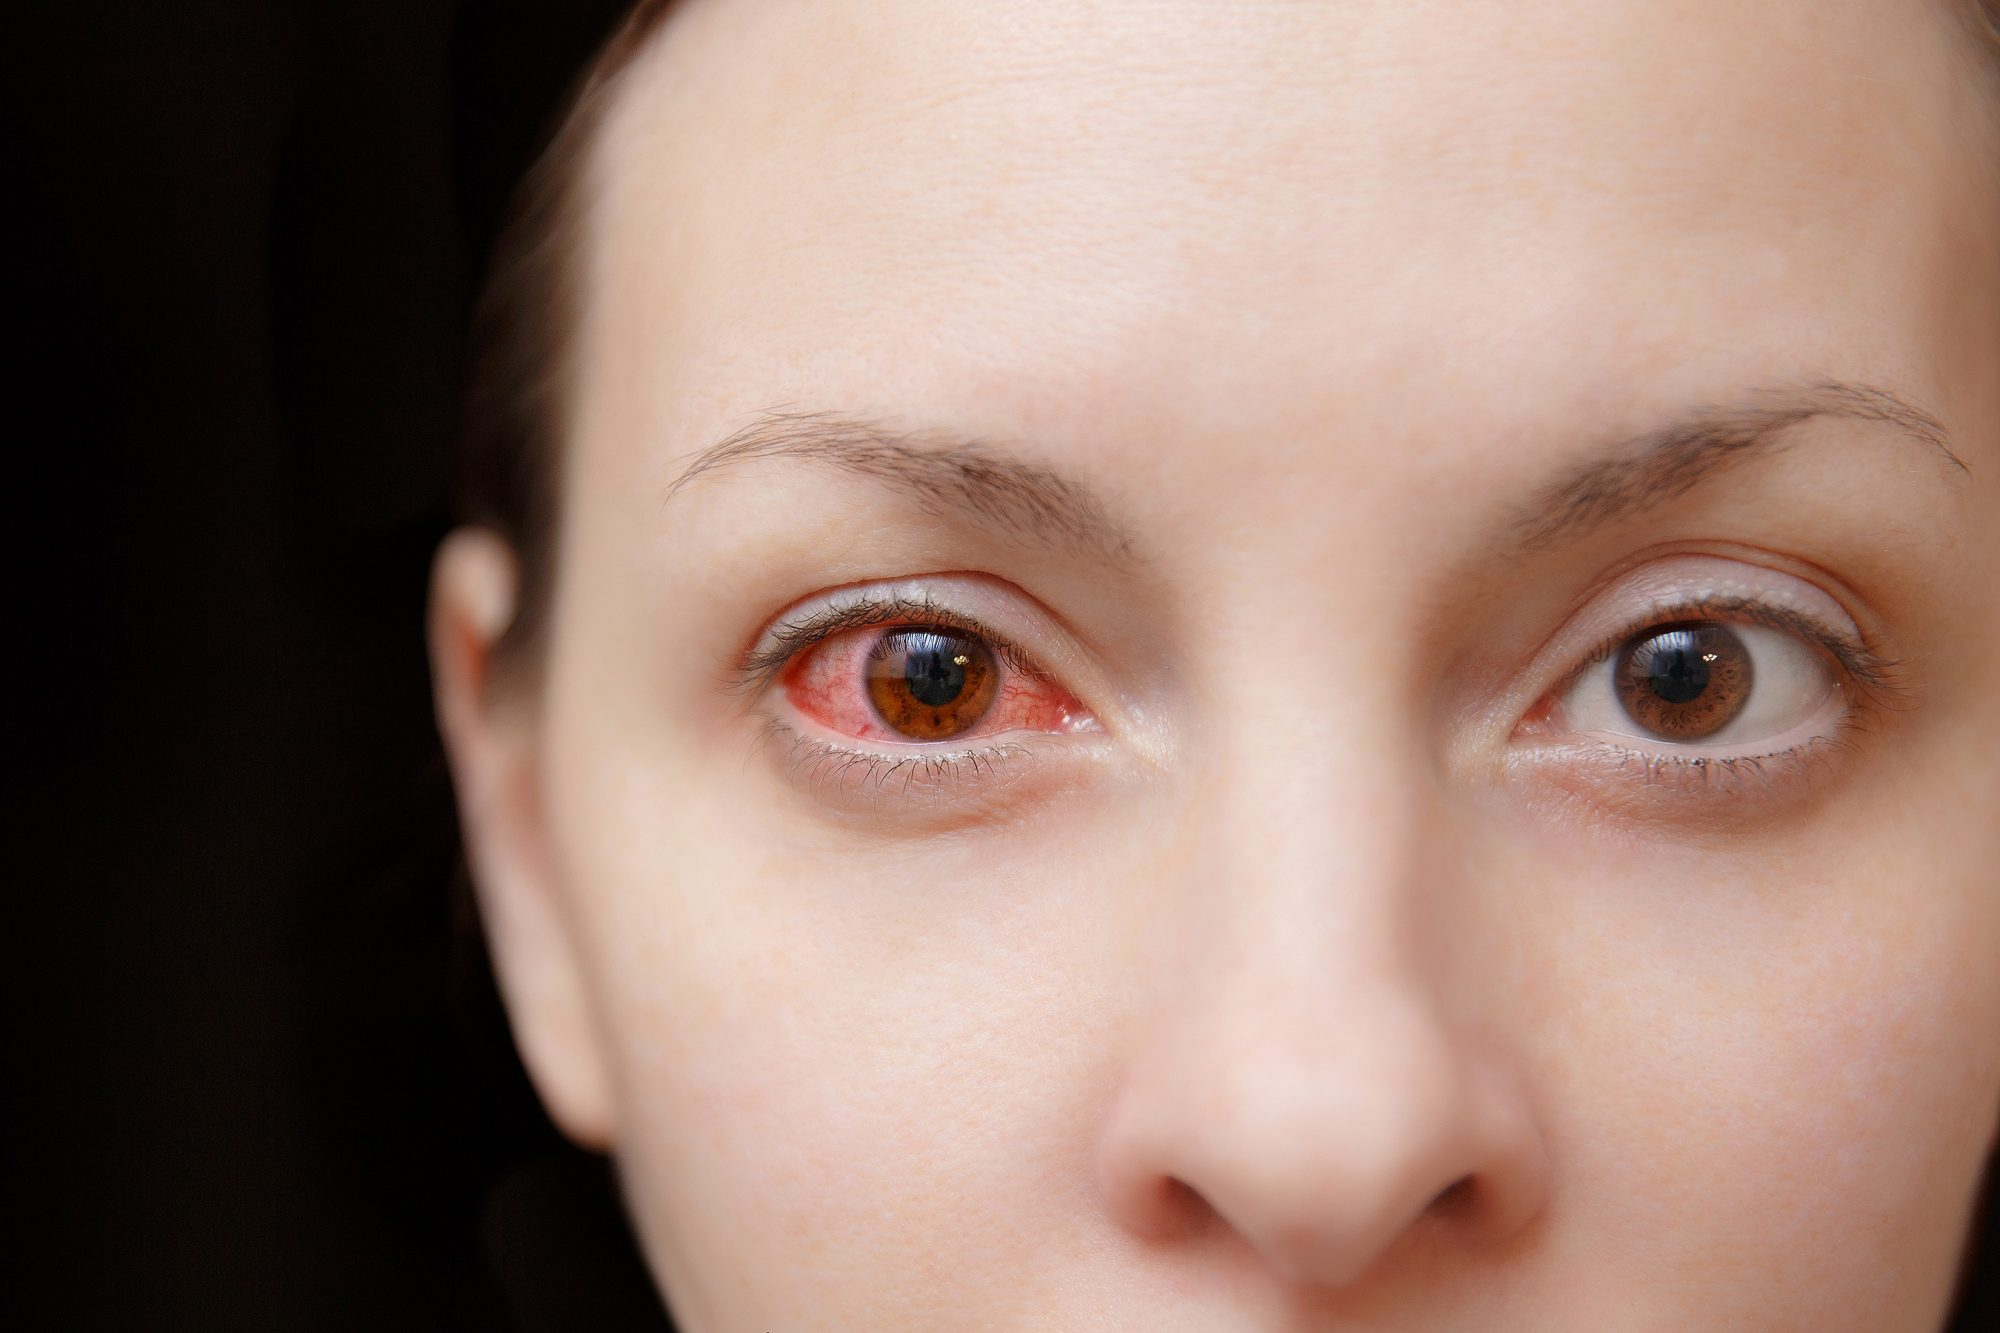 Mom Is Almost Blinded by a Parasite from Swimming in Her Contact Lenses: 'It was So Horrific'